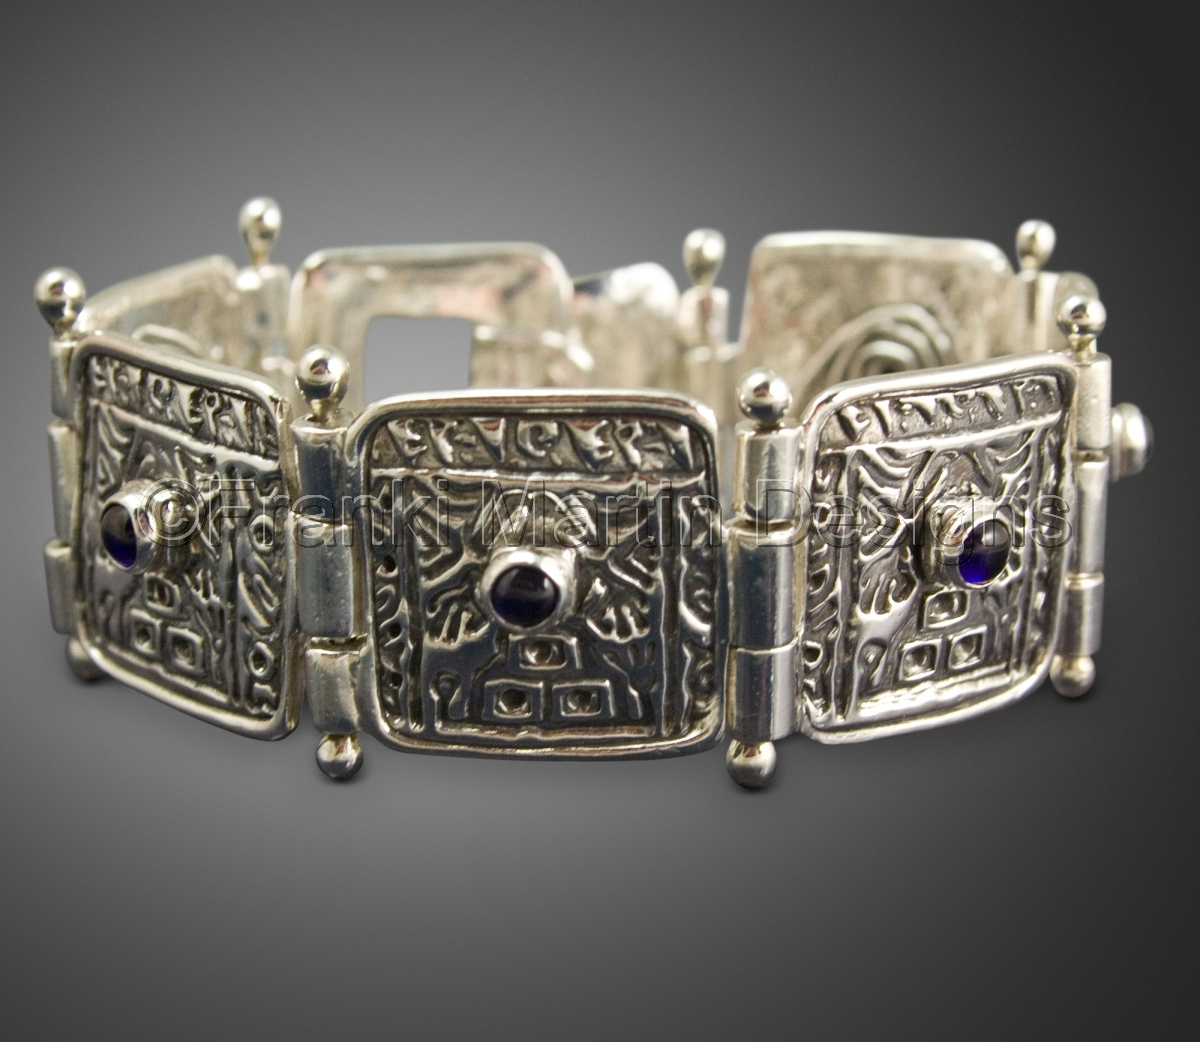 Bracelets precious metal clay jewelry sapphire bracelet for Martin metal designs